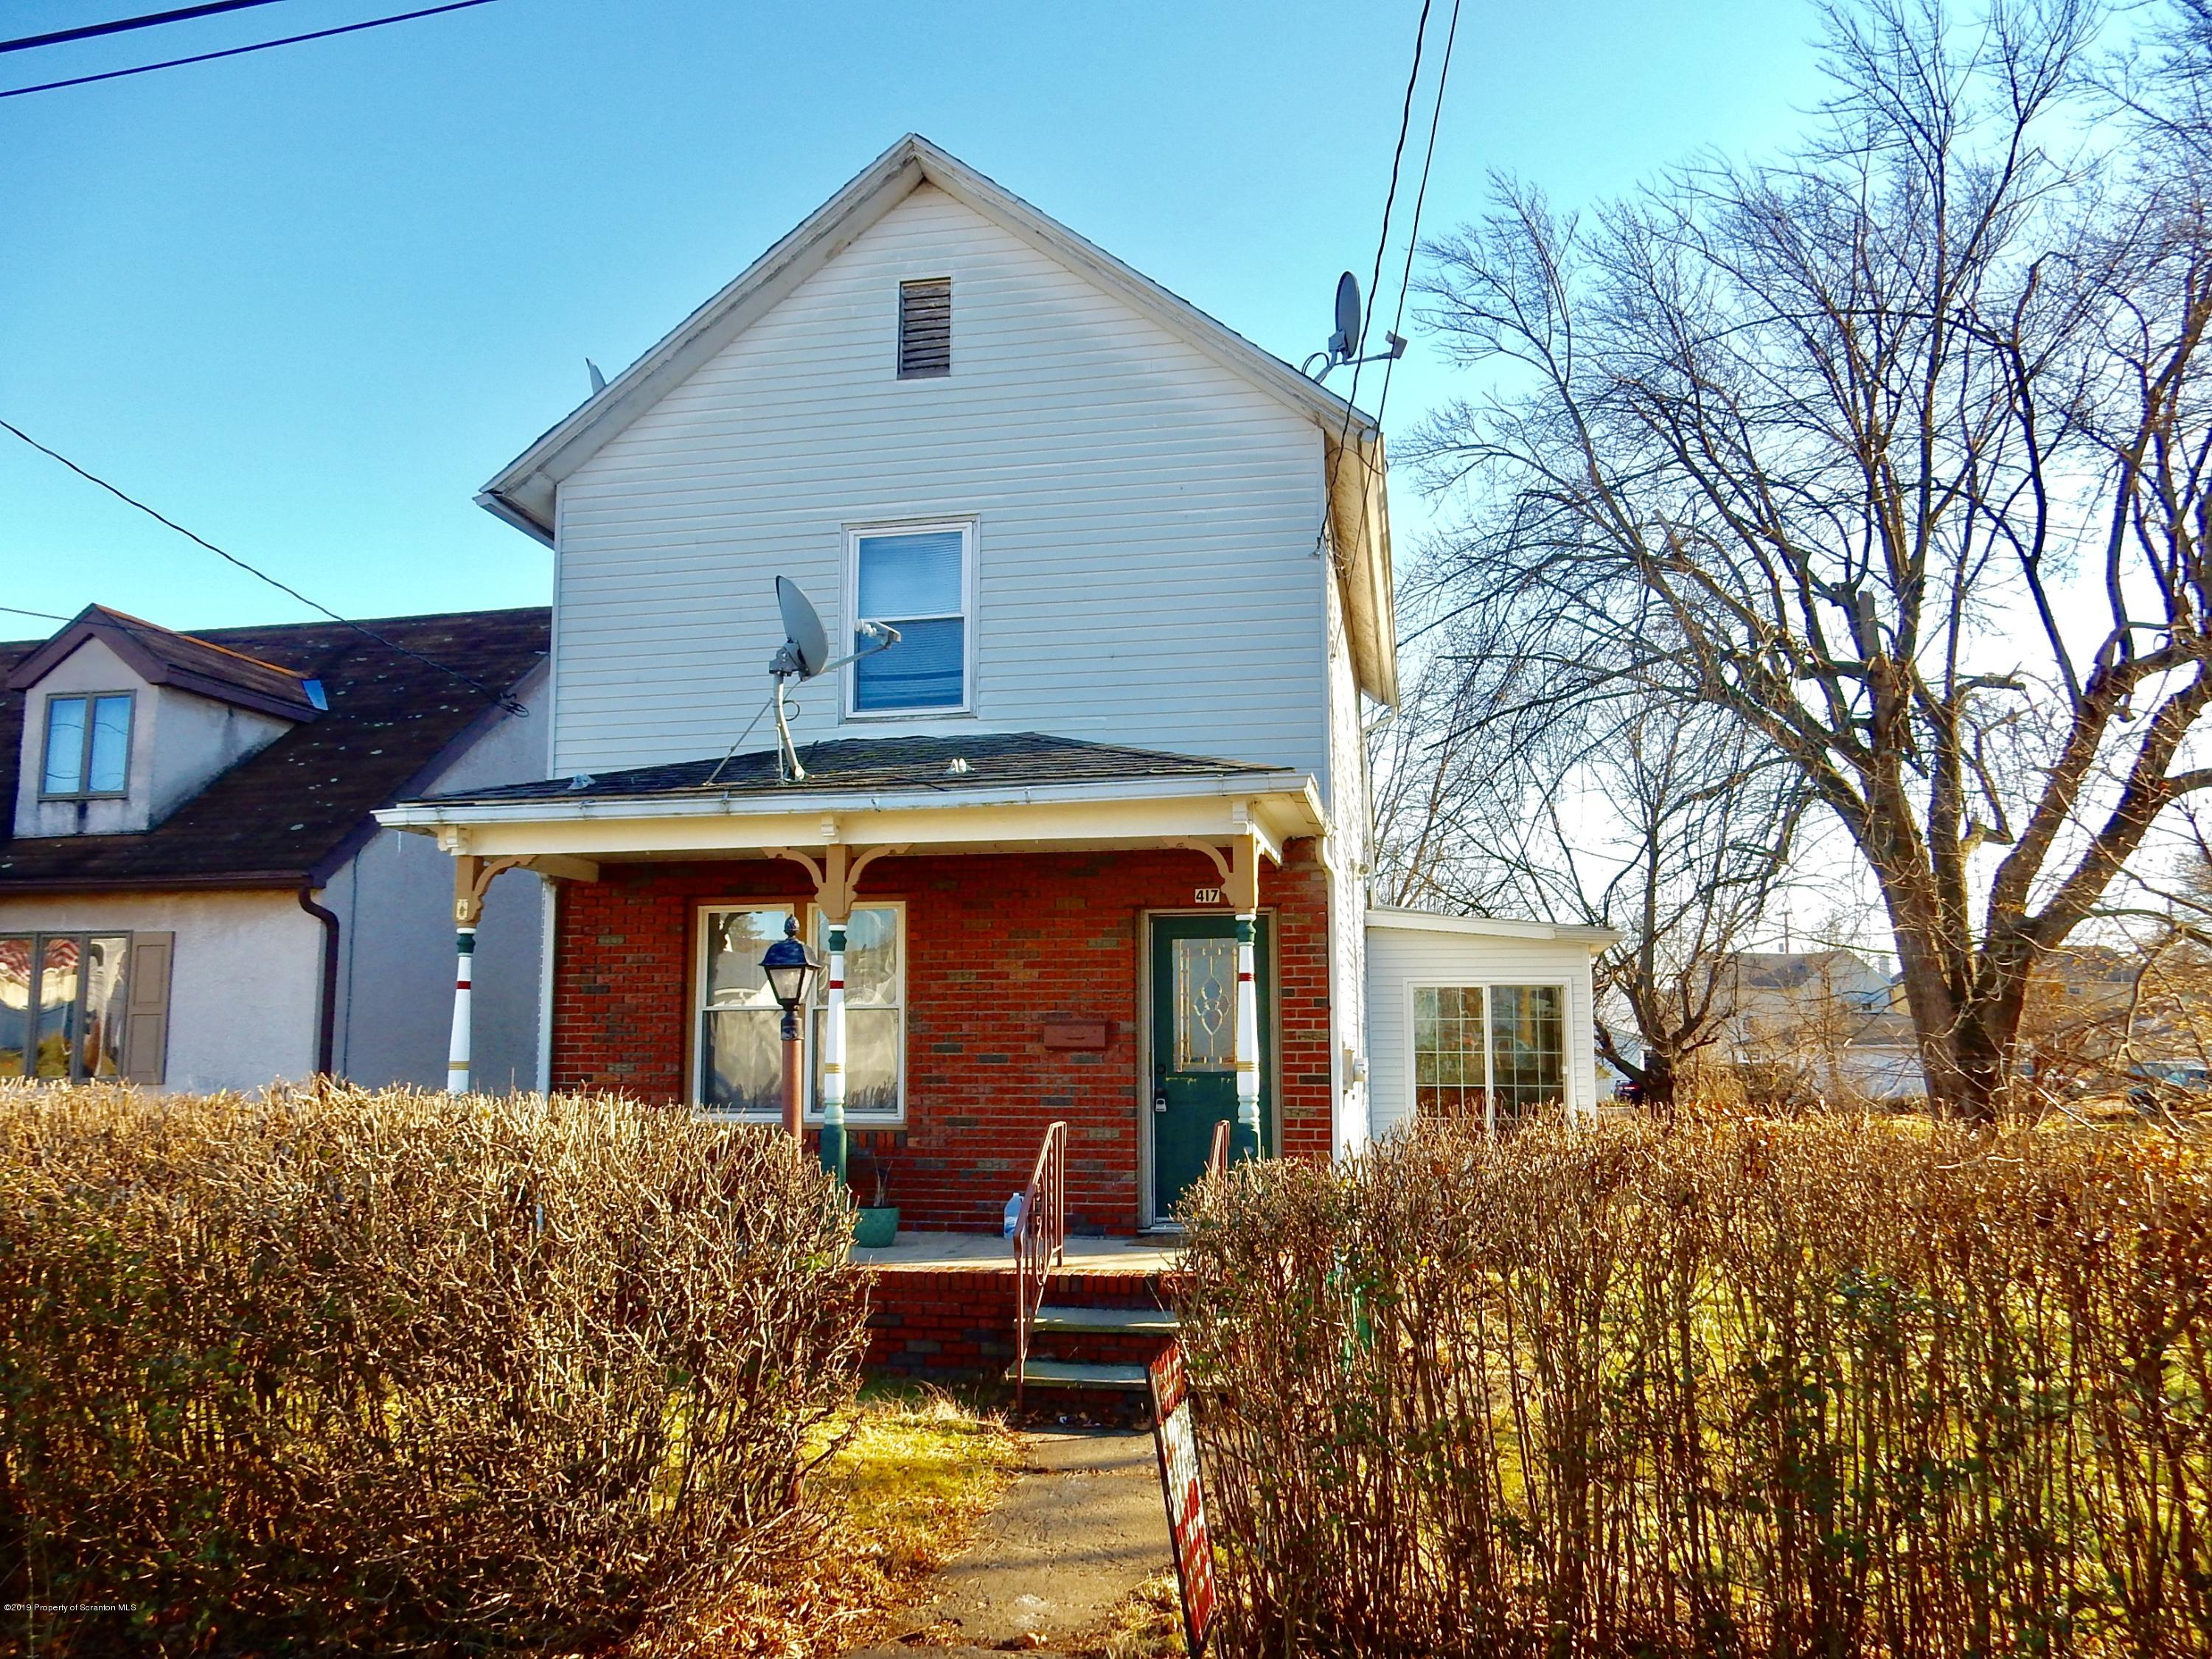 417 Sampson St, Old Forge, Pennsylvania 18518, 2 Bedrooms Bedrooms, 5 Rooms Rooms,2 BathroomsBathrooms,Single Family,For Sale,Sampson,19-5672